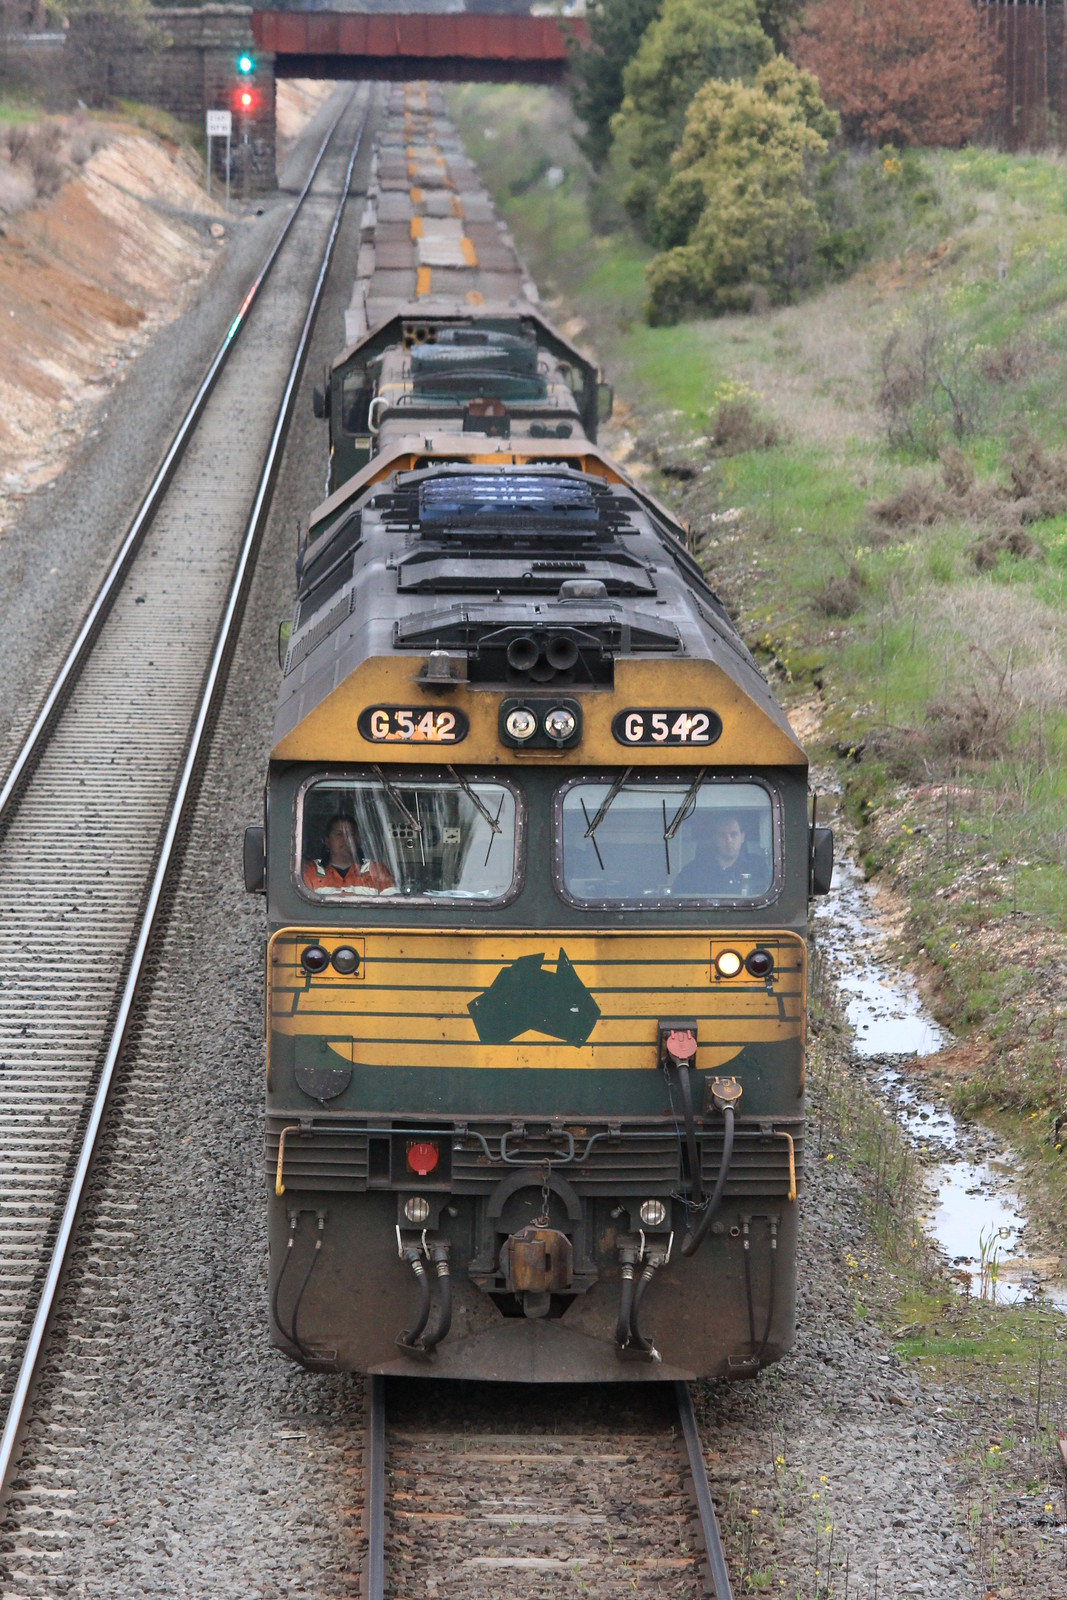 G542 leads X43 and X44 as it waits at Ballarat East to proceed North by bukk05